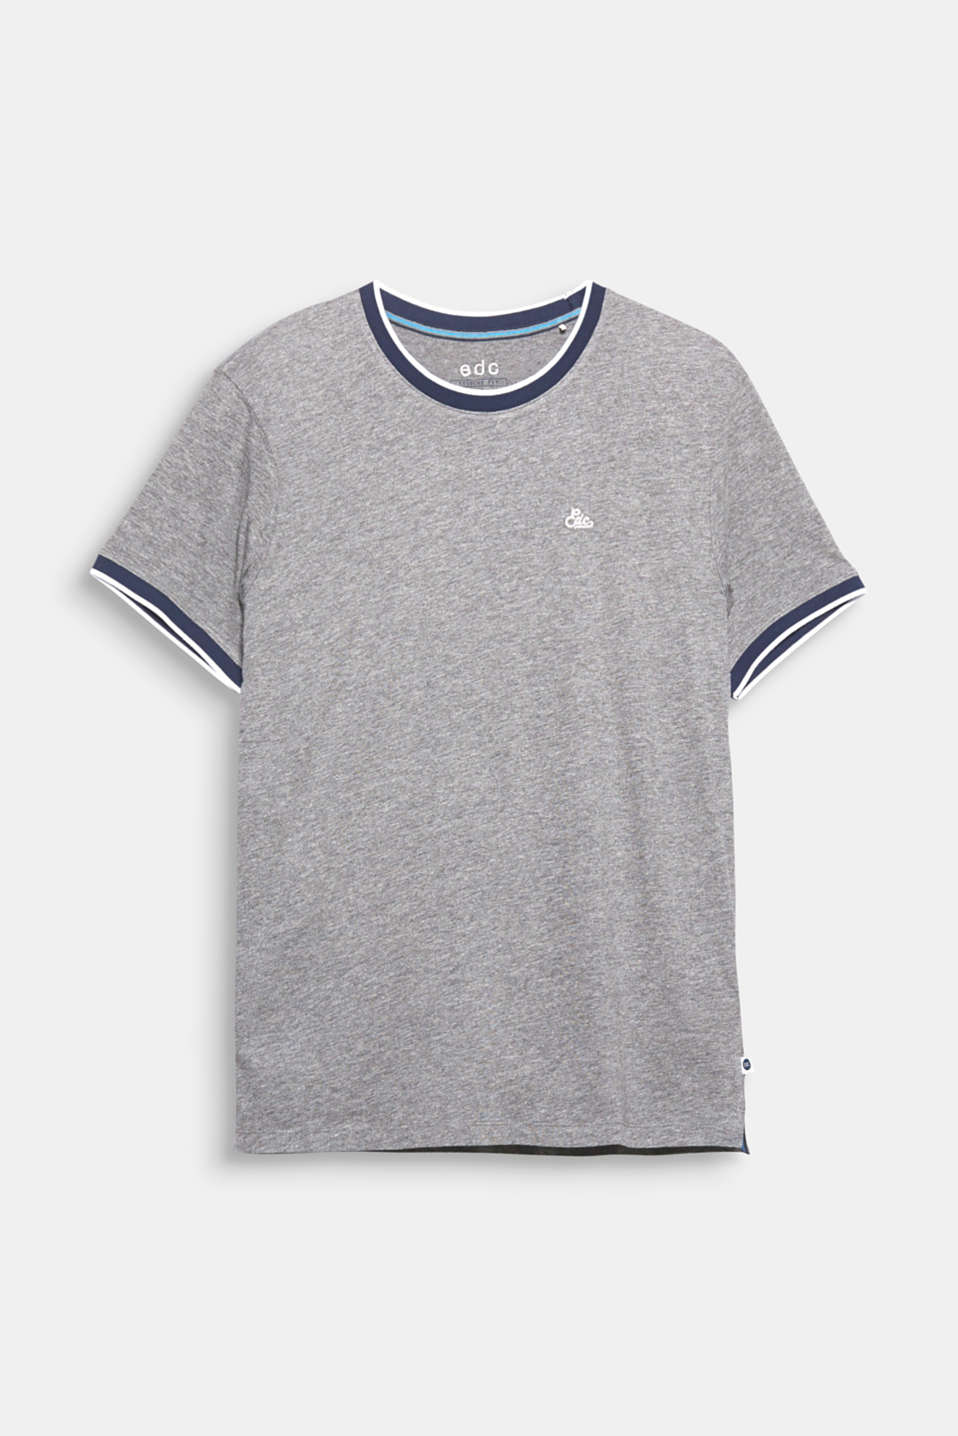 The contrast colour ribbed borders give this cotton T-shirt a sporty look.